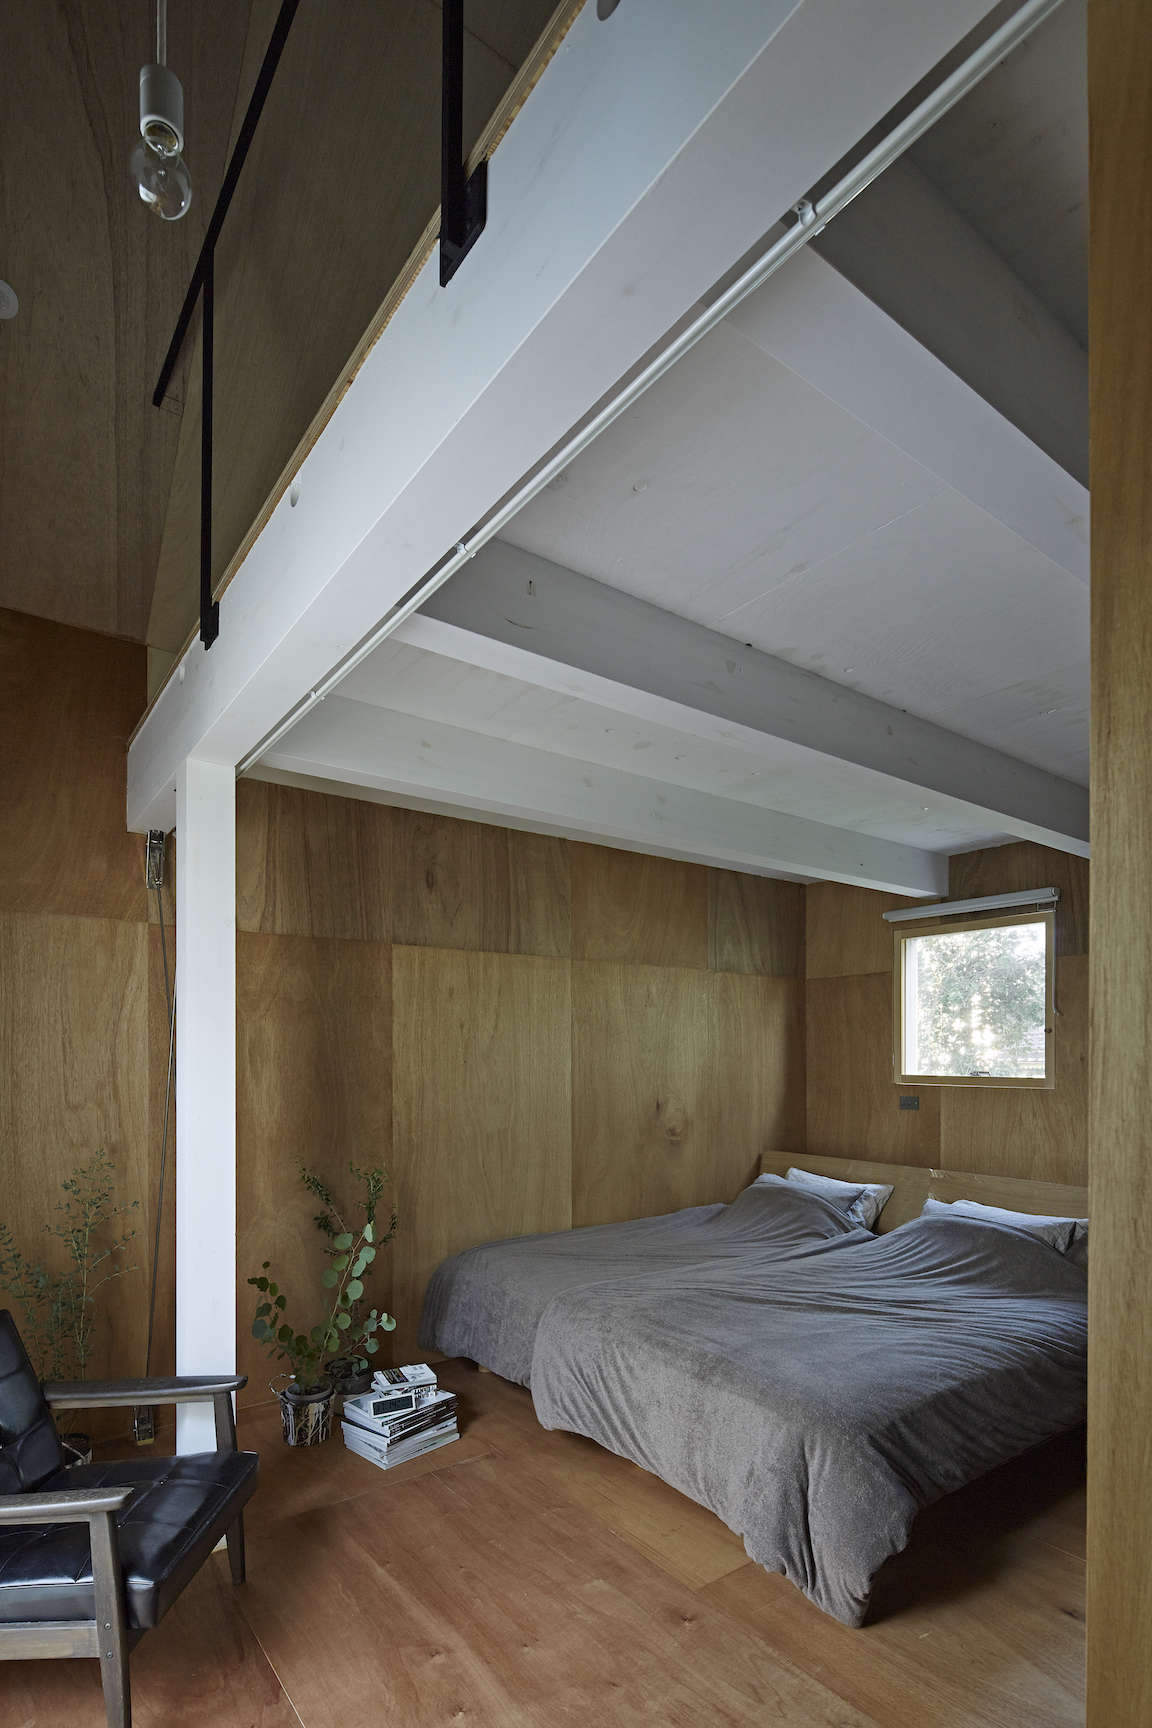 plywood paneled bedroom at sabi, a surfers' house in chiba, japan, designed by  20